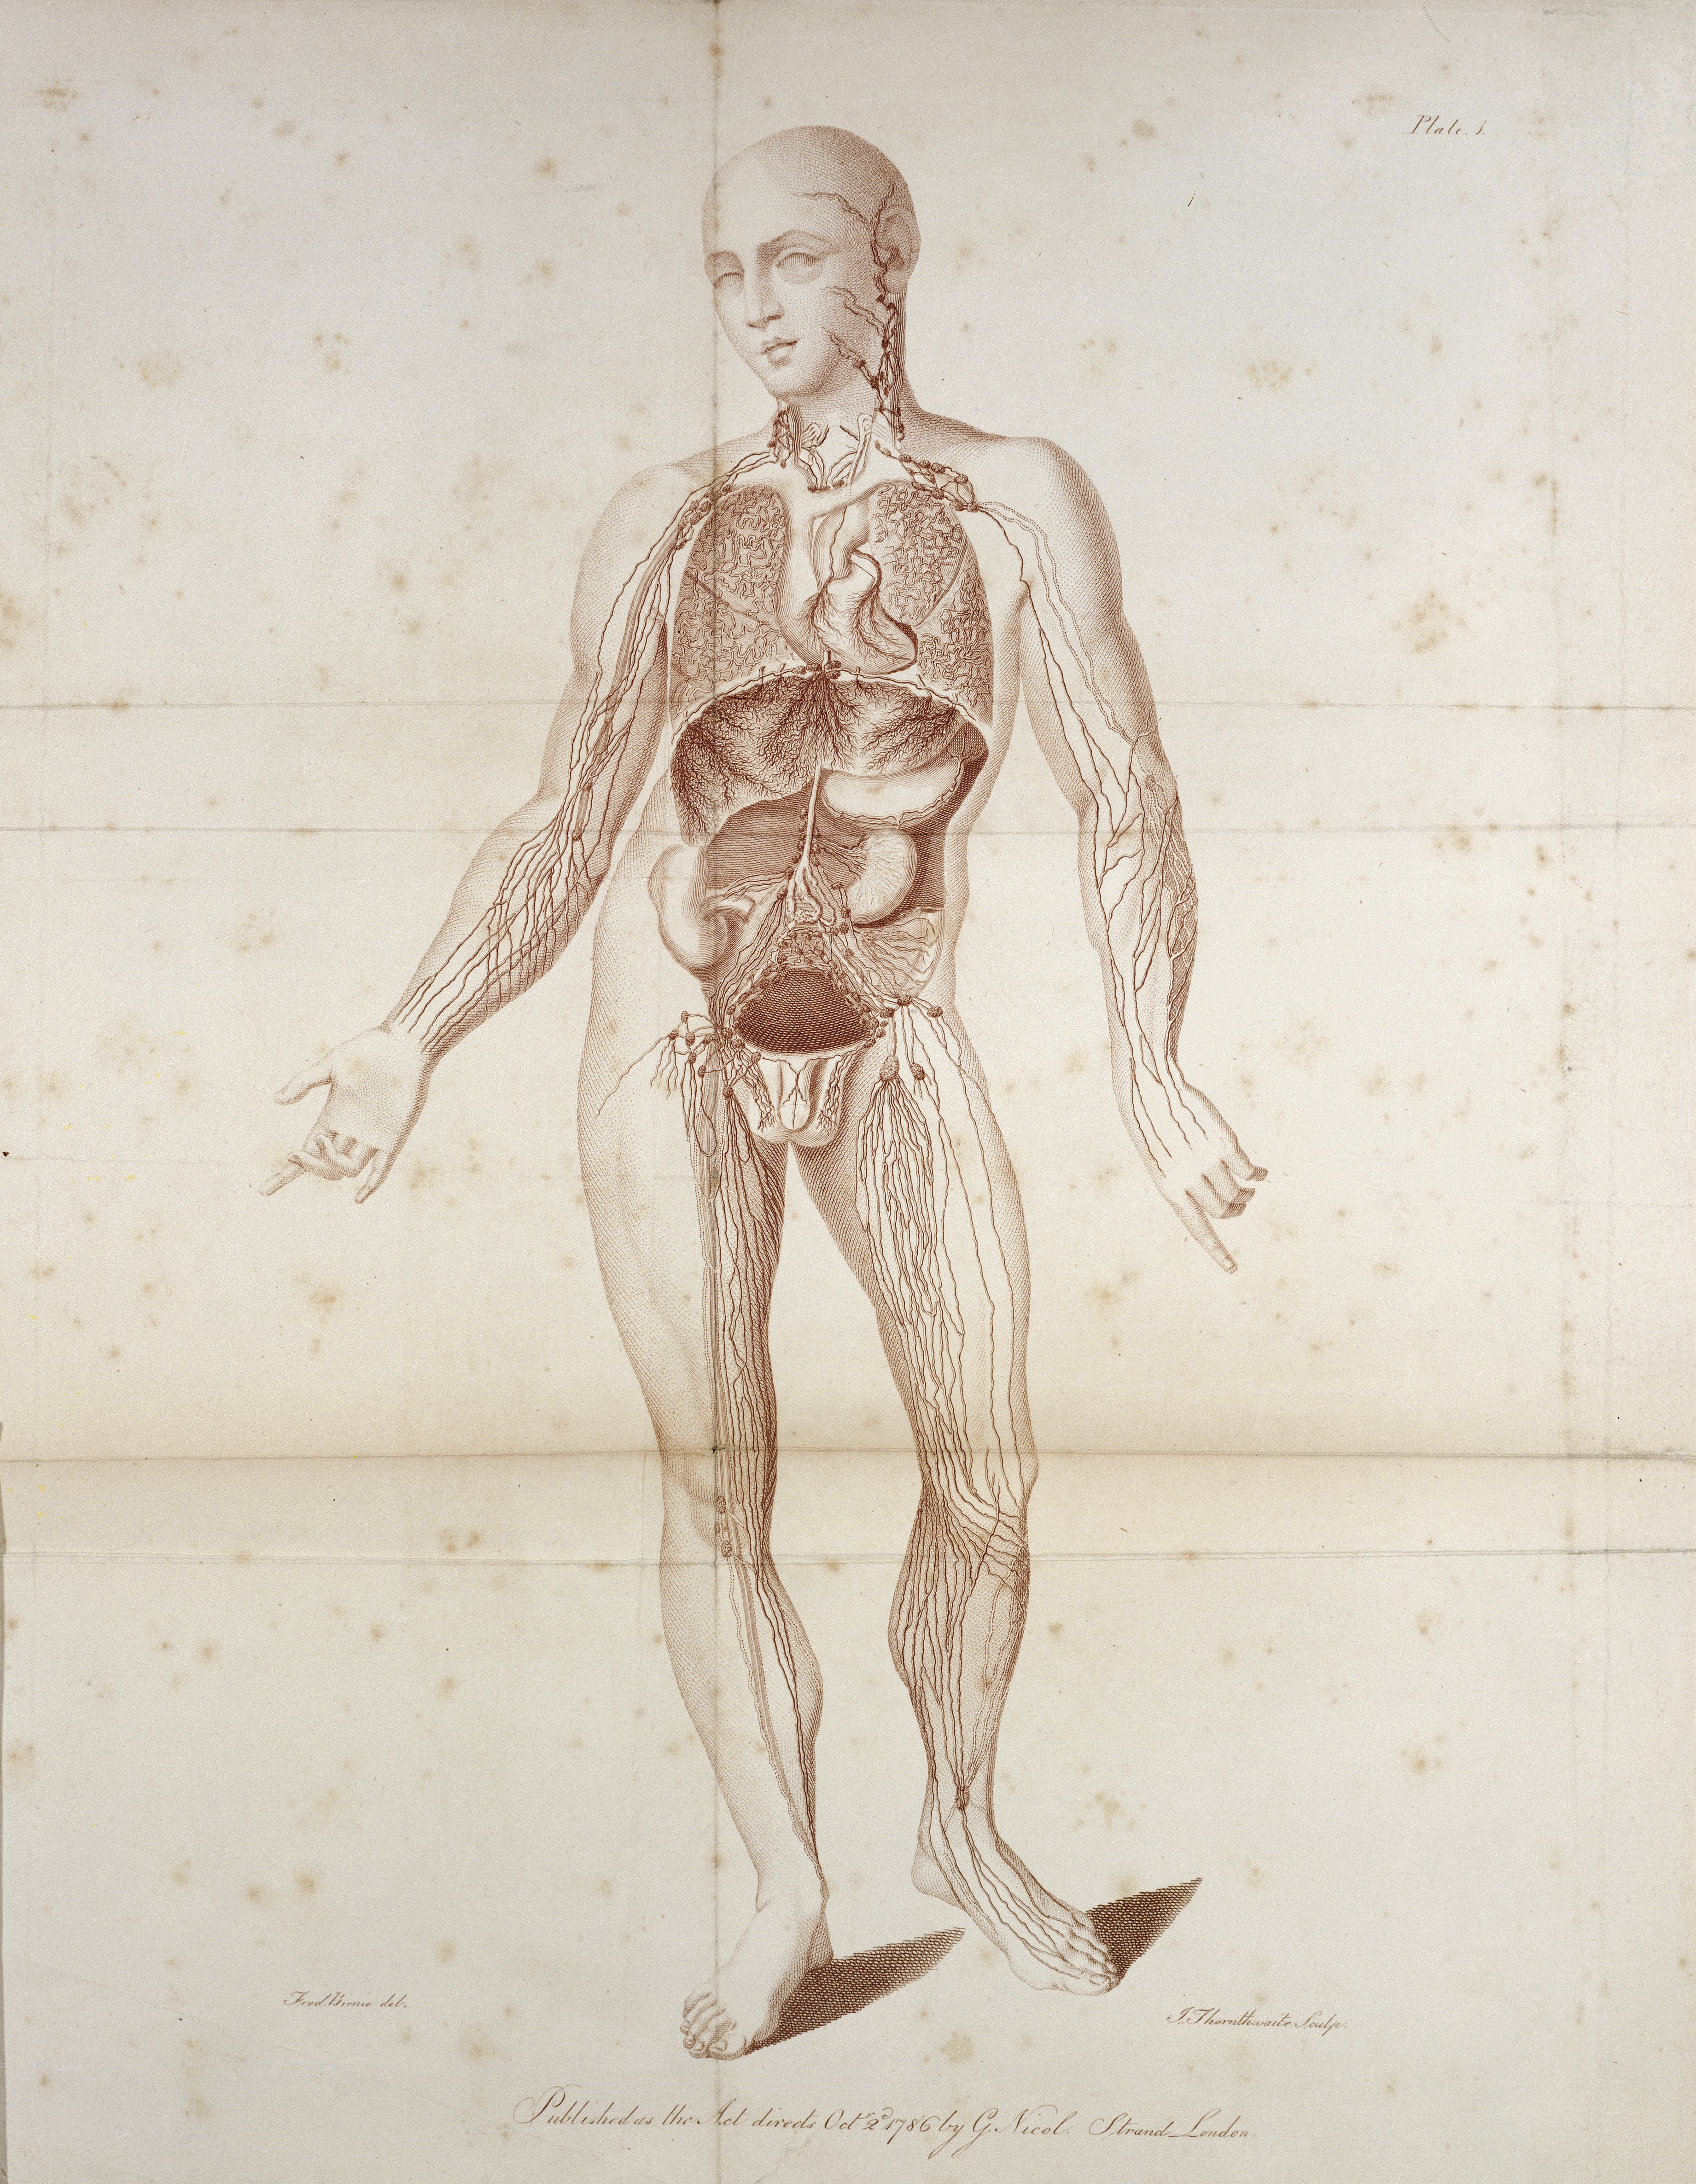 Fileabsorbing Vessels Of The Human Body By W Cruikshank Wellcome